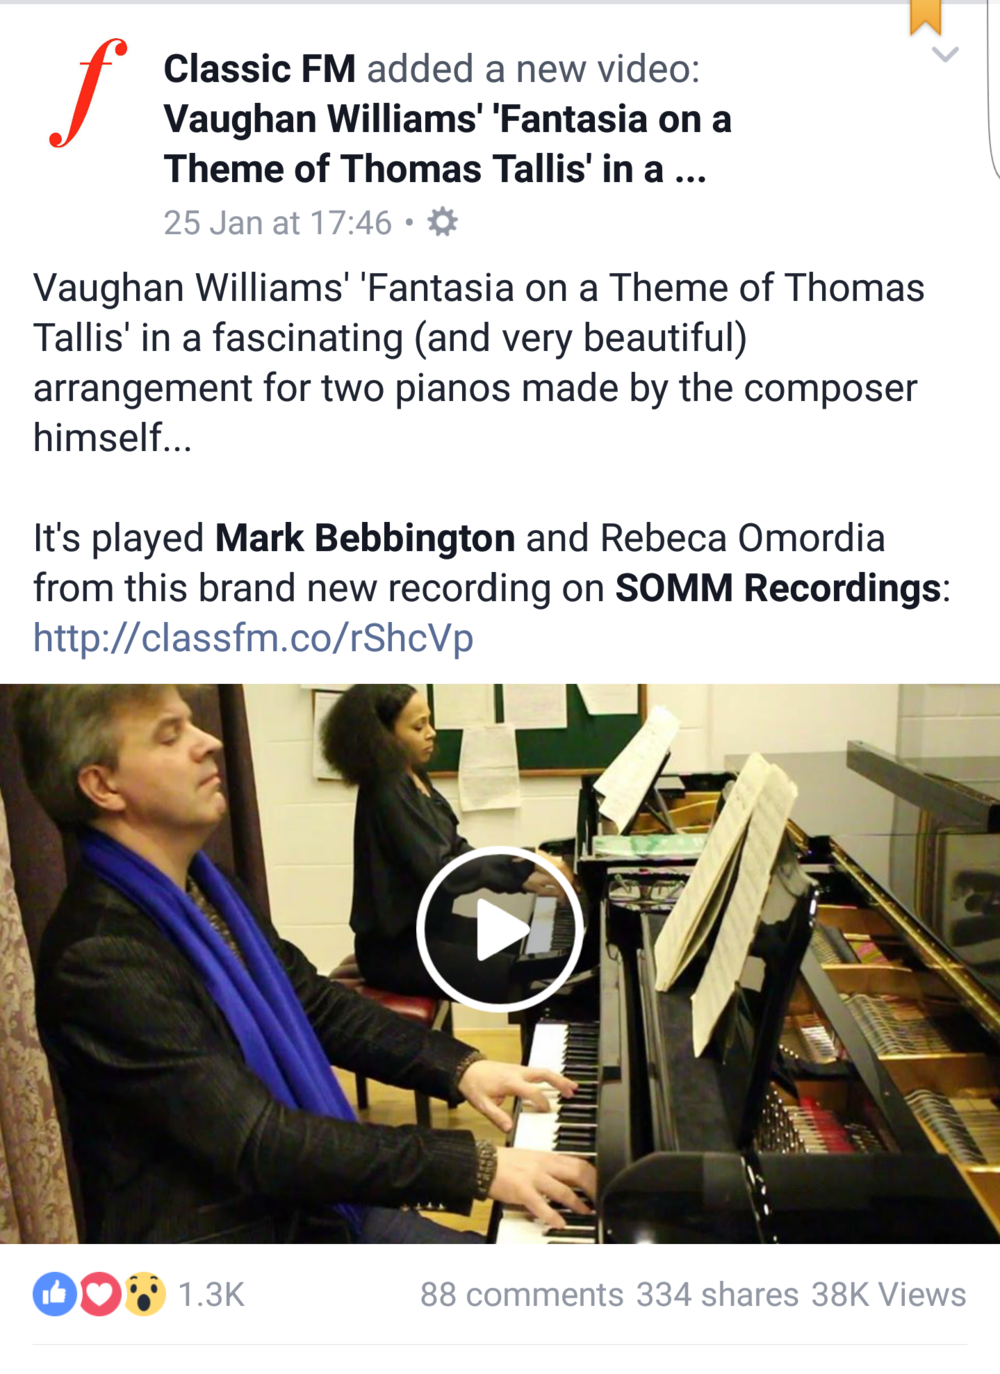 Watch rebeca and mark perform fantasia on a theme of thomas tallis on classic fm